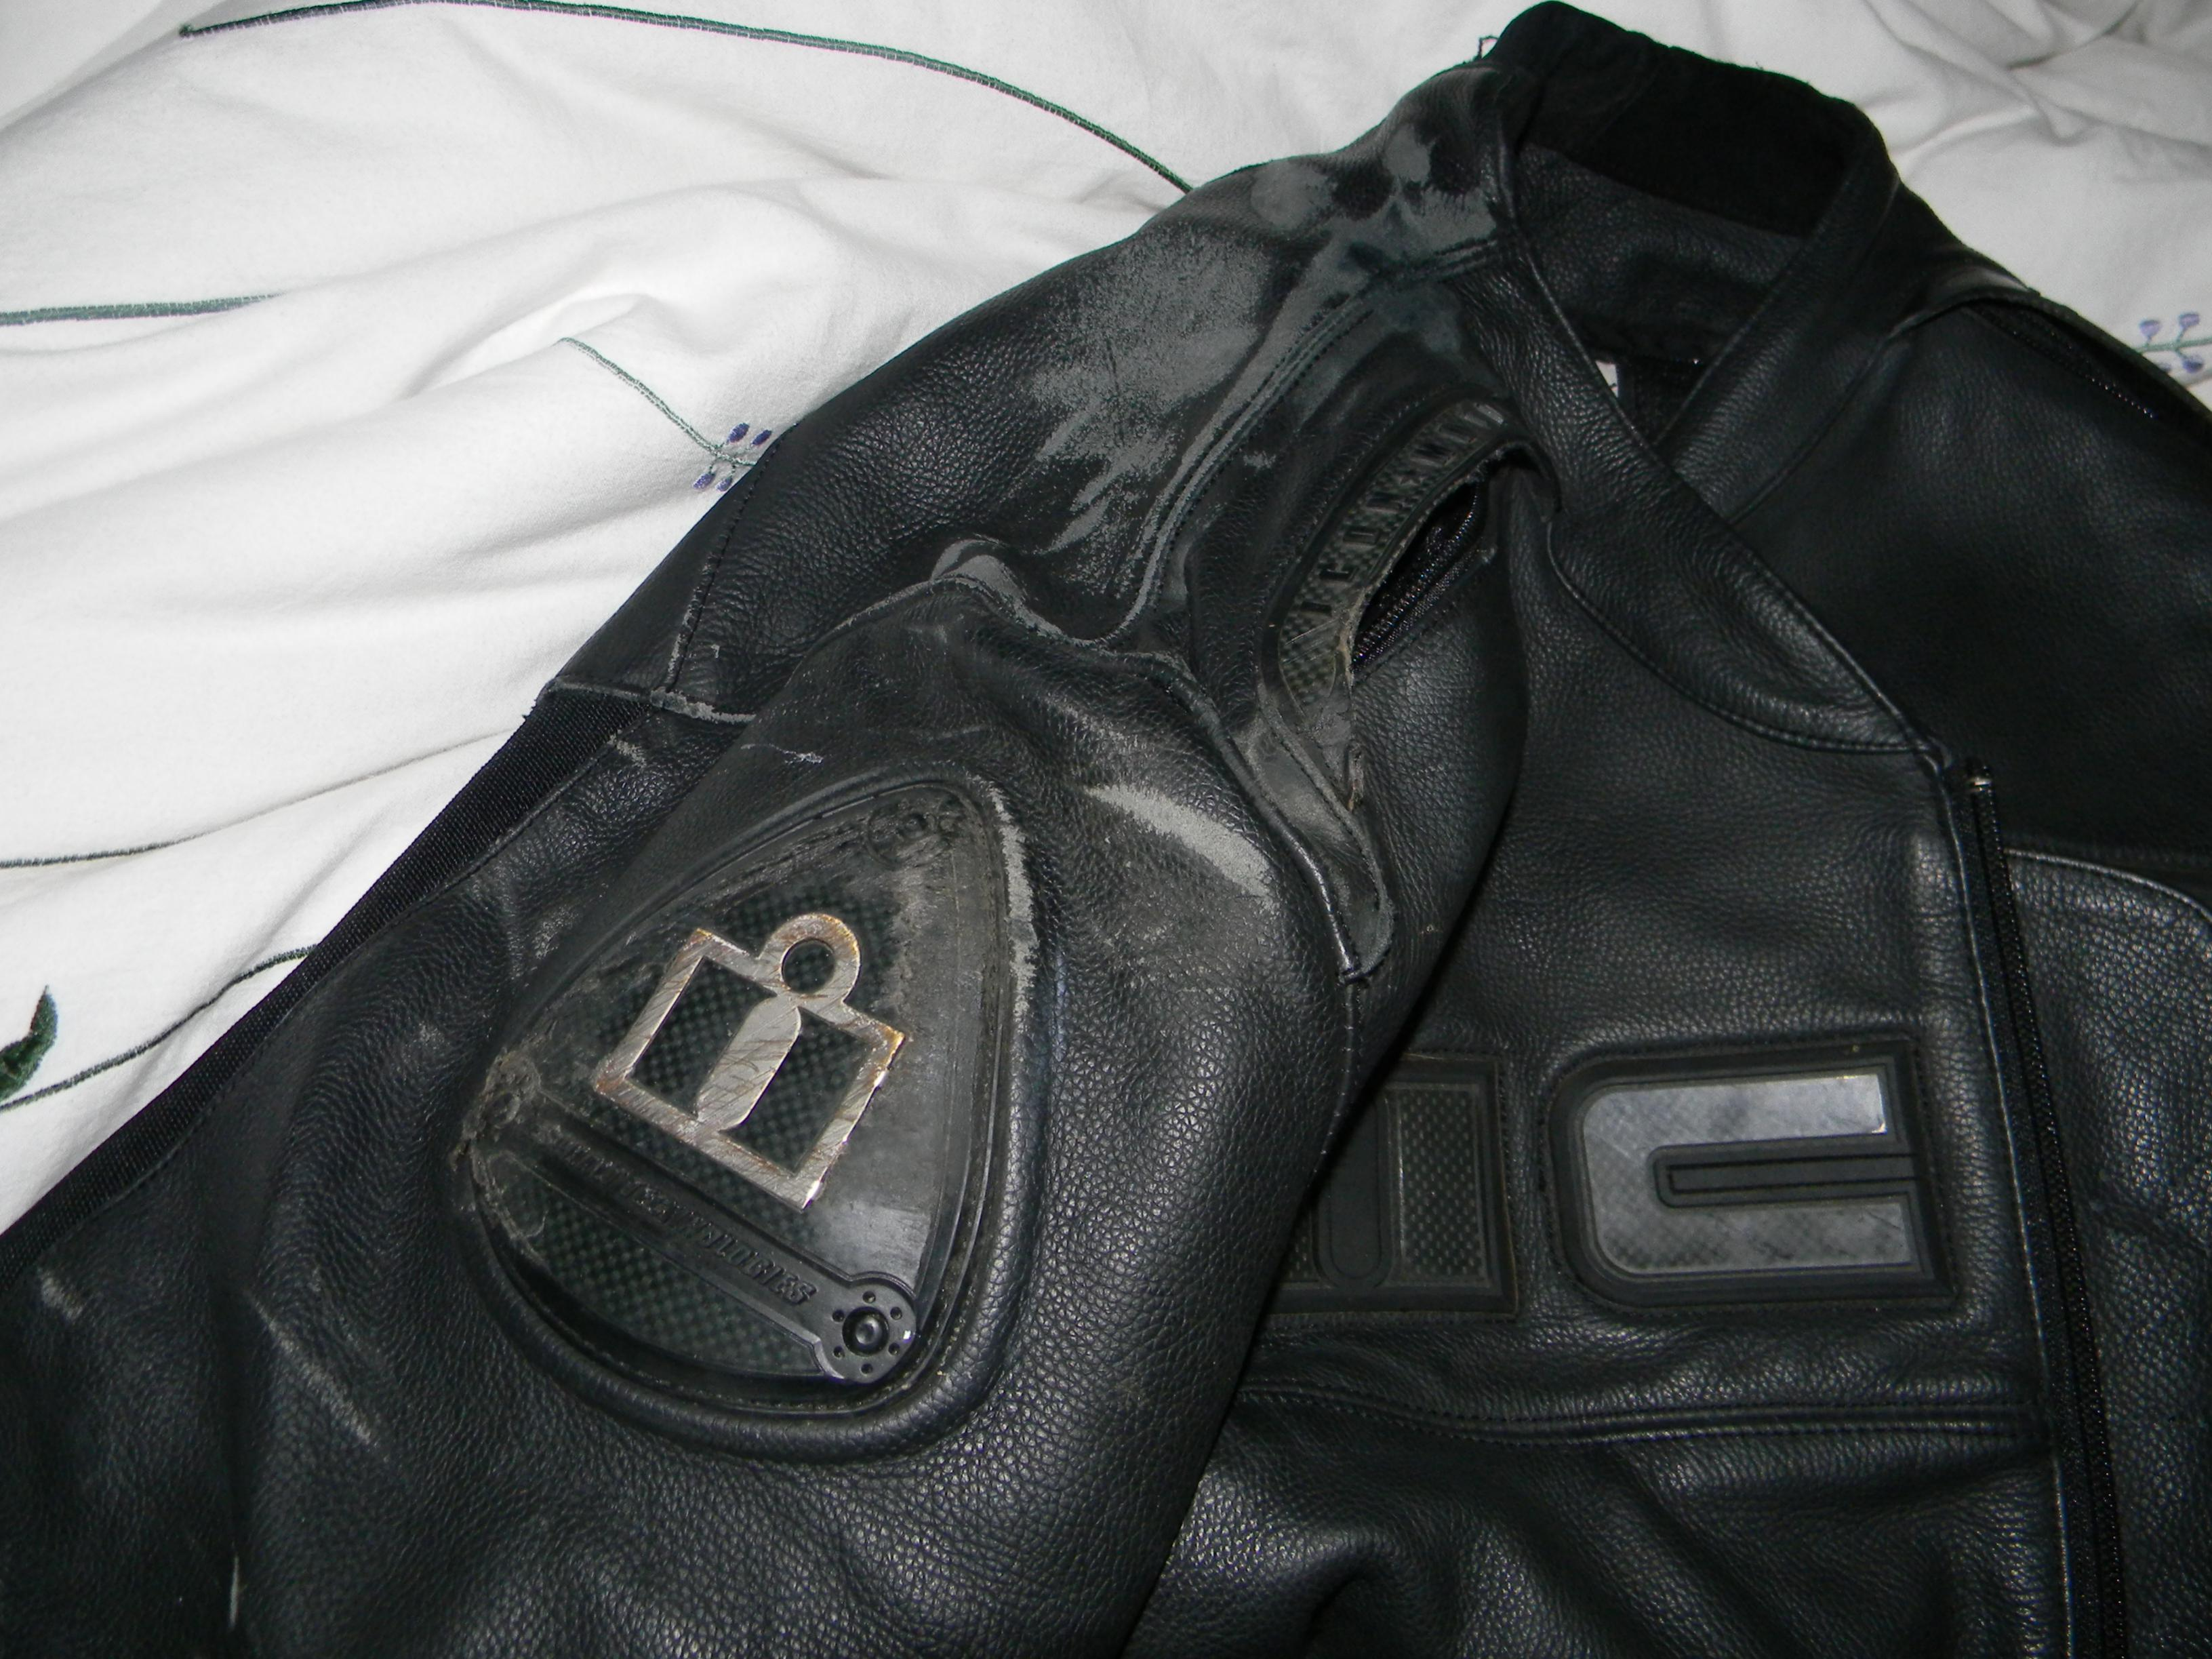 Icon Accelerant leather jacket..Thoughts? - Sportbikes.net